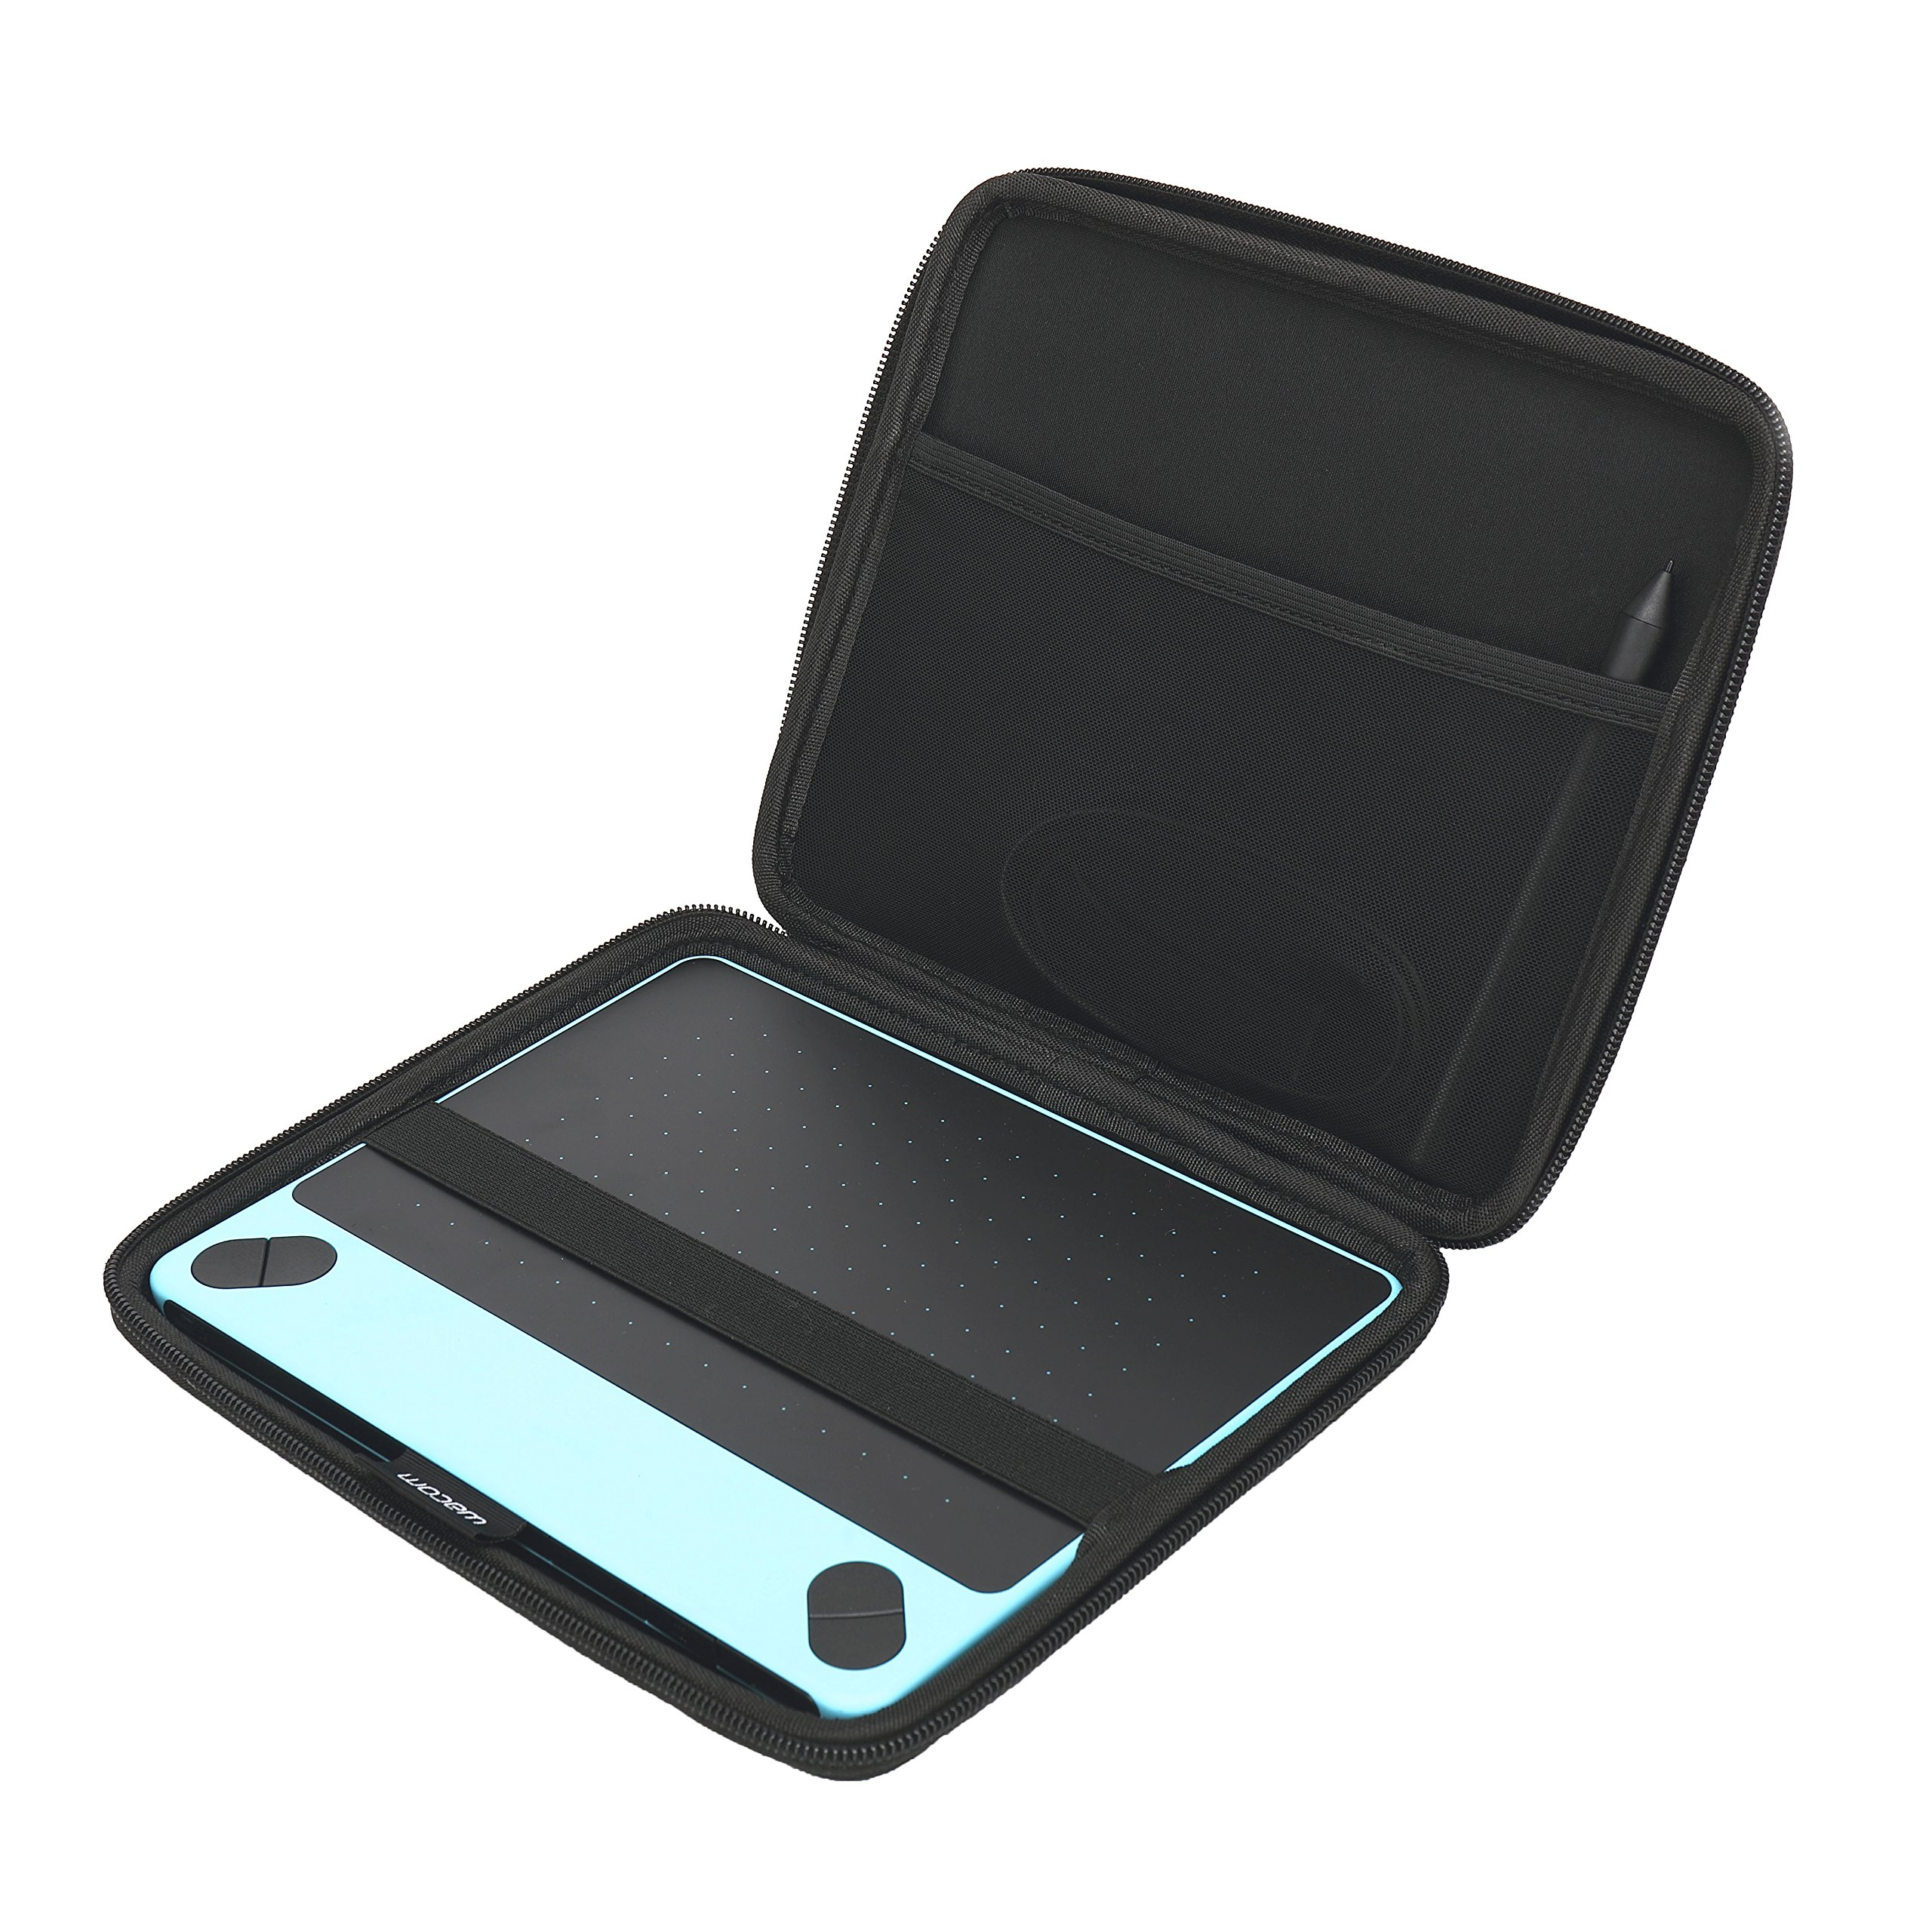 for Wacom Intuos Small Black Digital Drawing Graphics Tablet CTL4100  CTL490DW Hard Carrying Case by Aproca